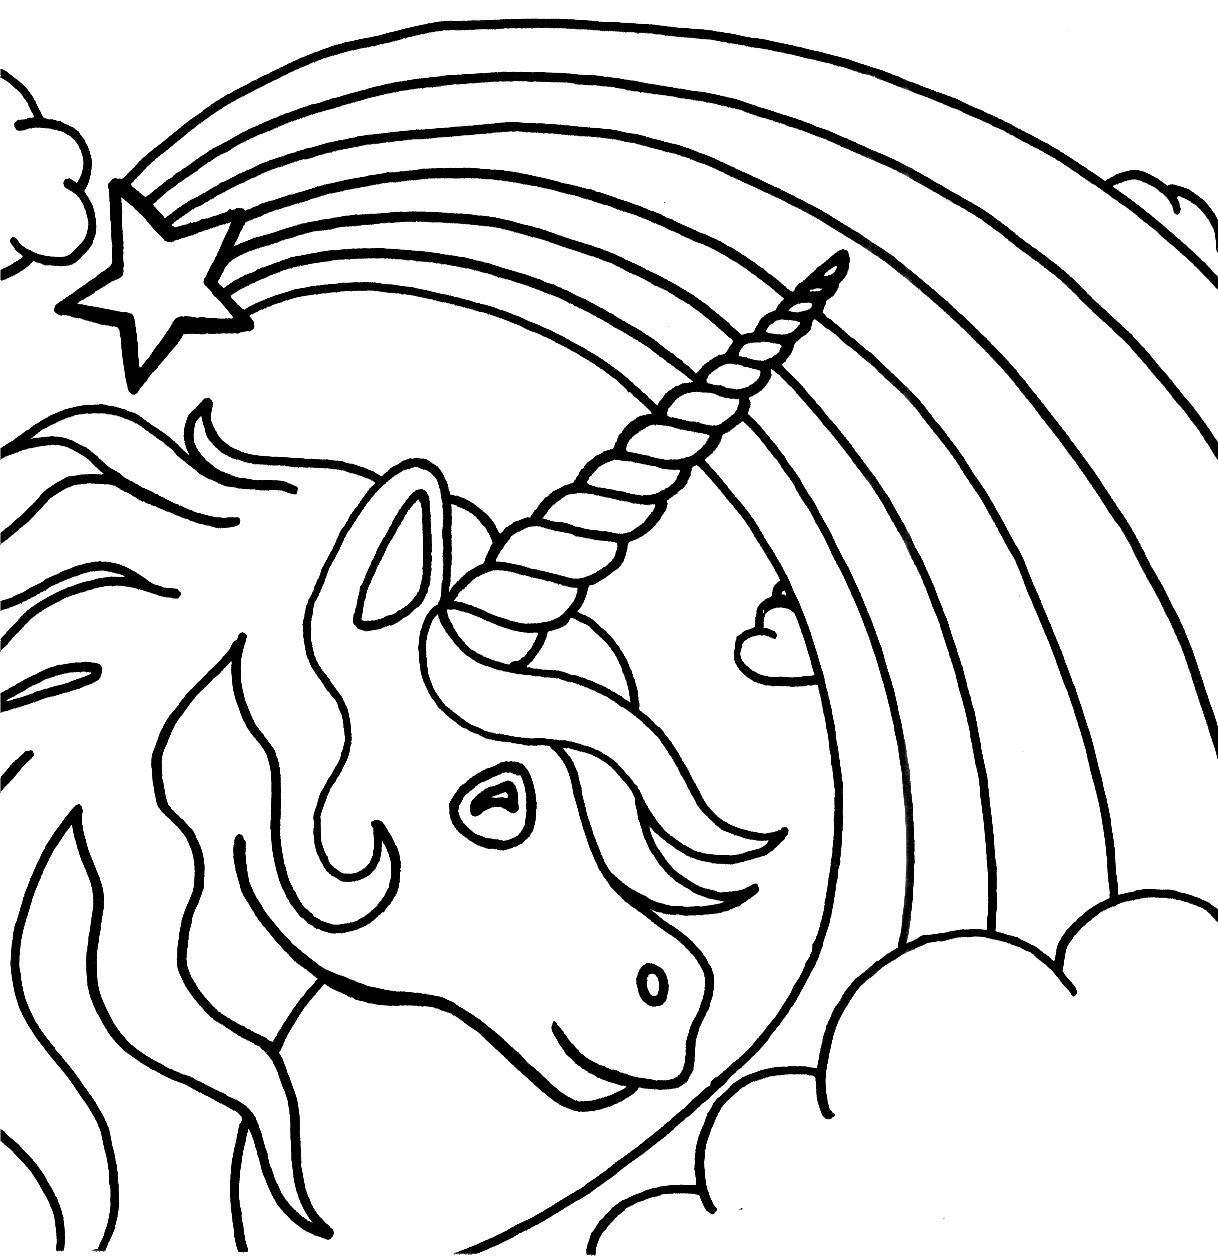 Best ideas about Free Coloring Pages To Print For Kids . Save or Pin Free Printable Unicorn Coloring Pages For Kids Now.